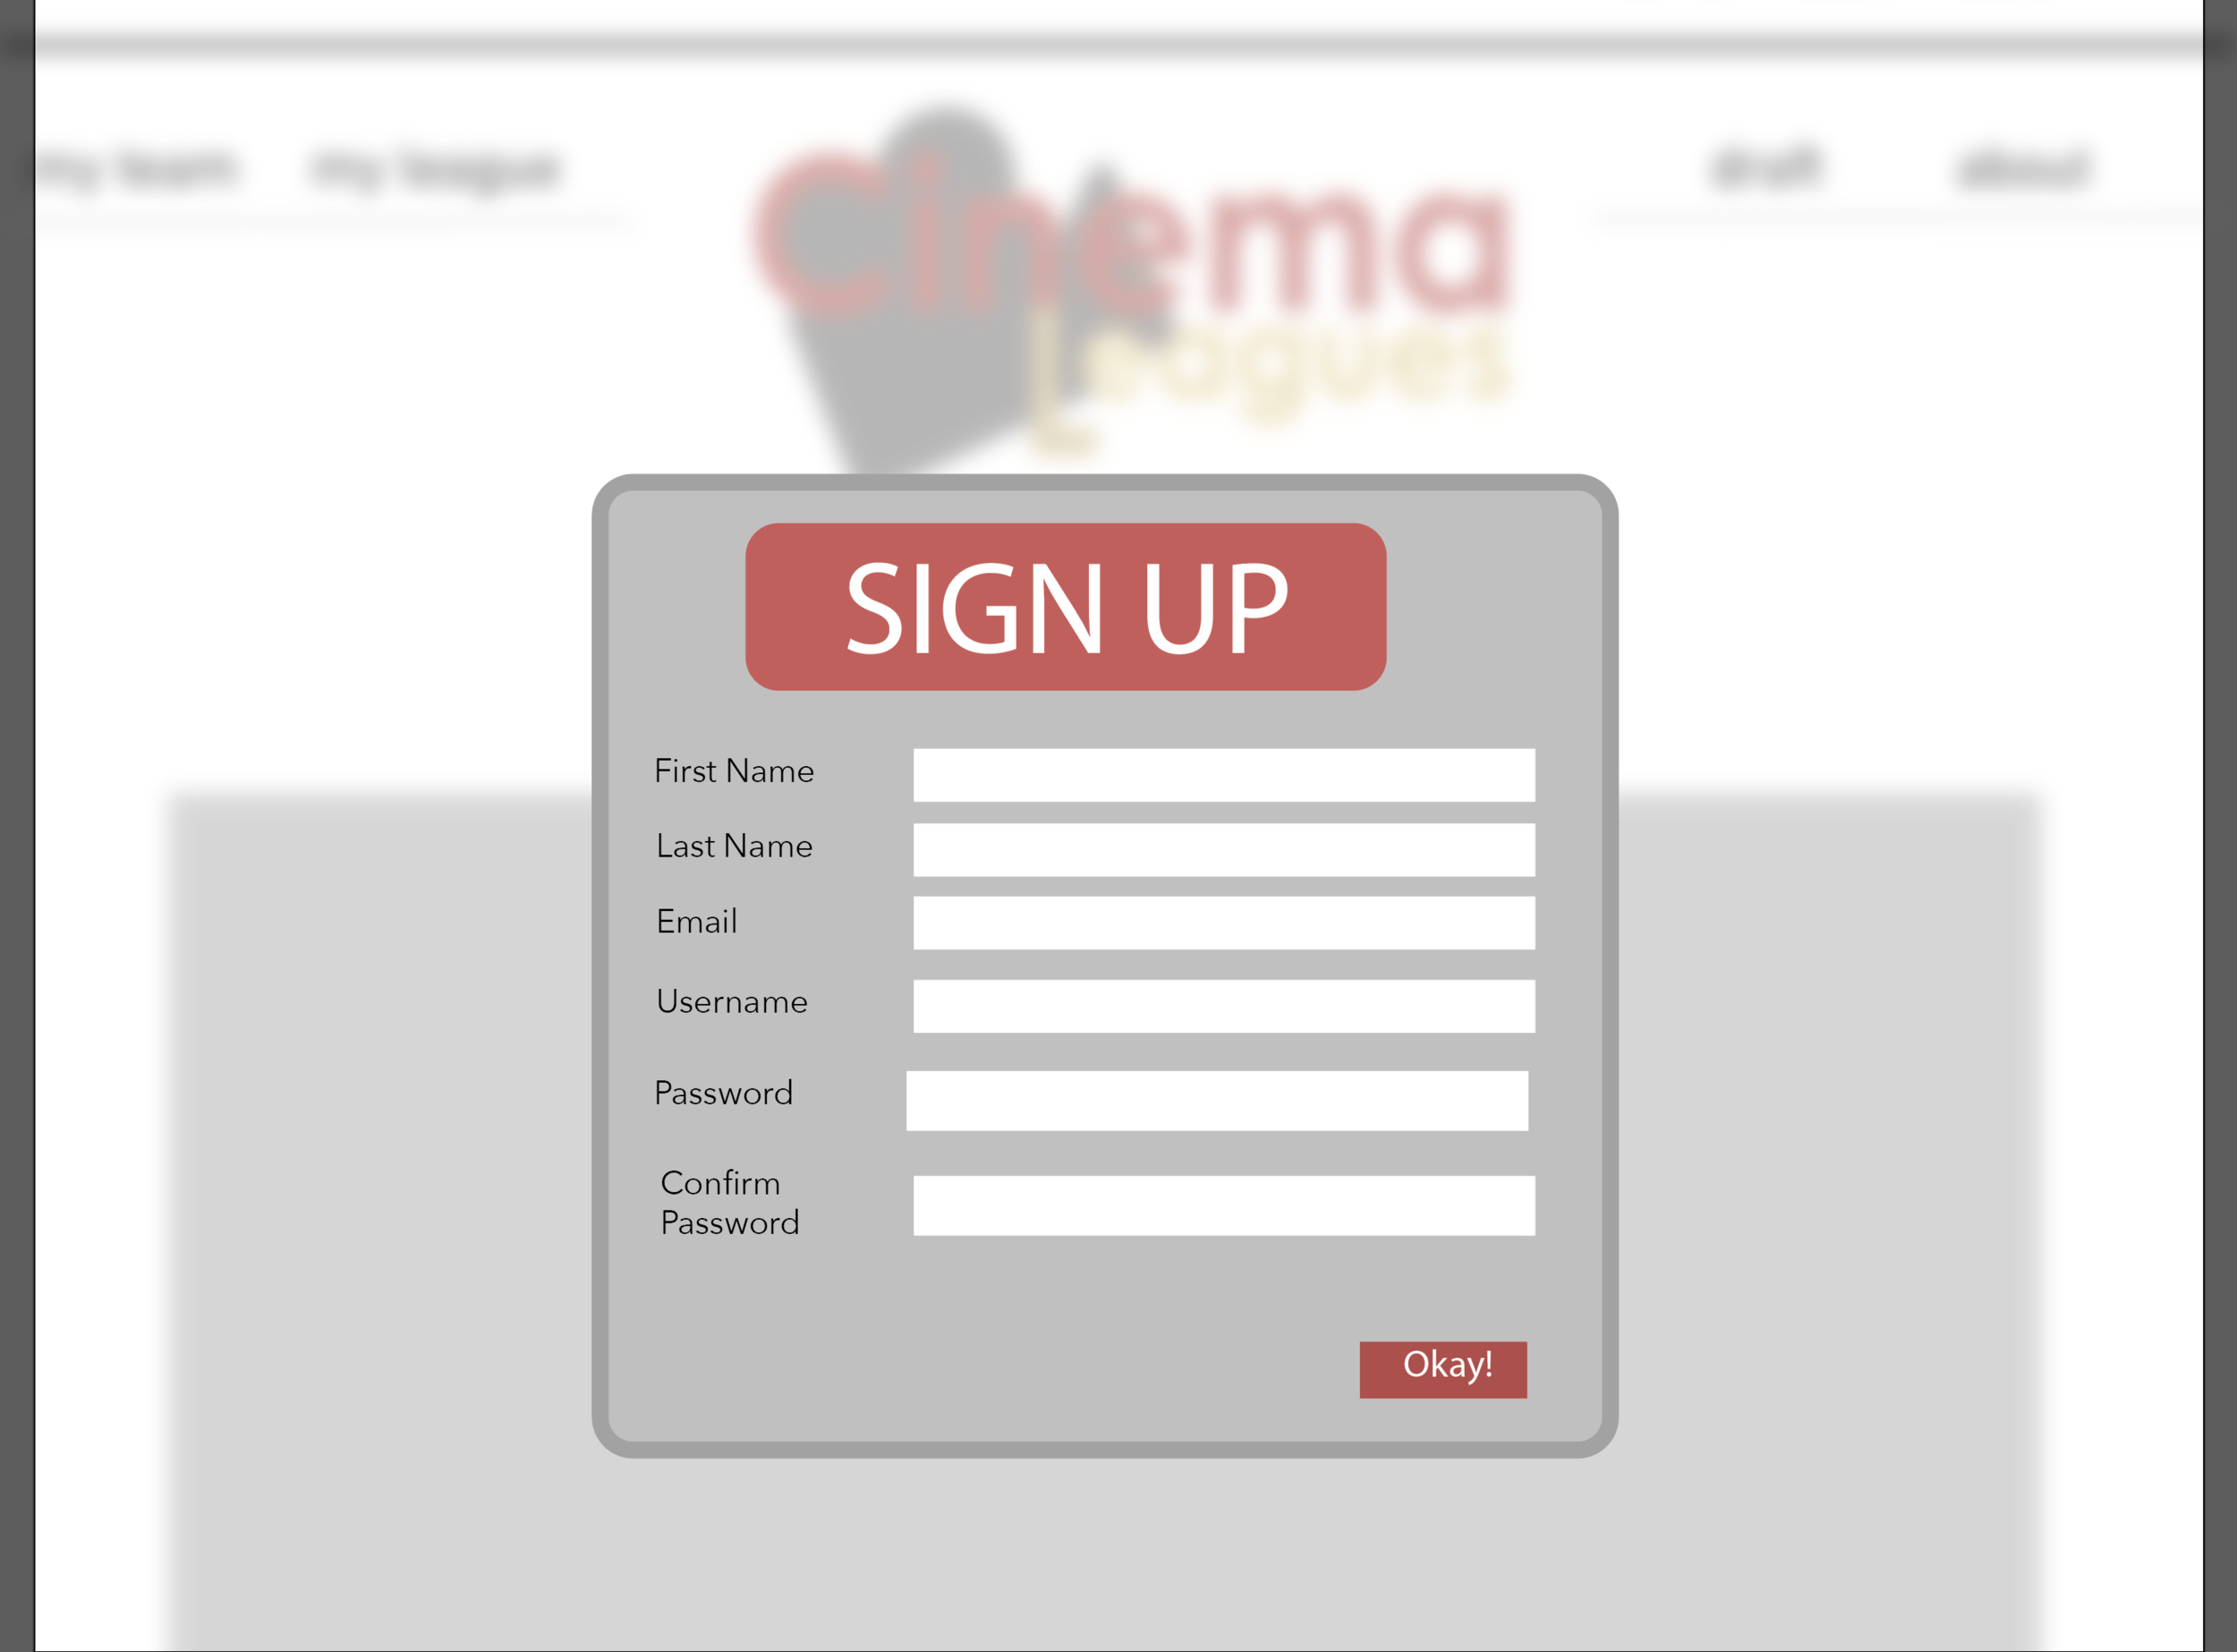 Sign Up page_1.png